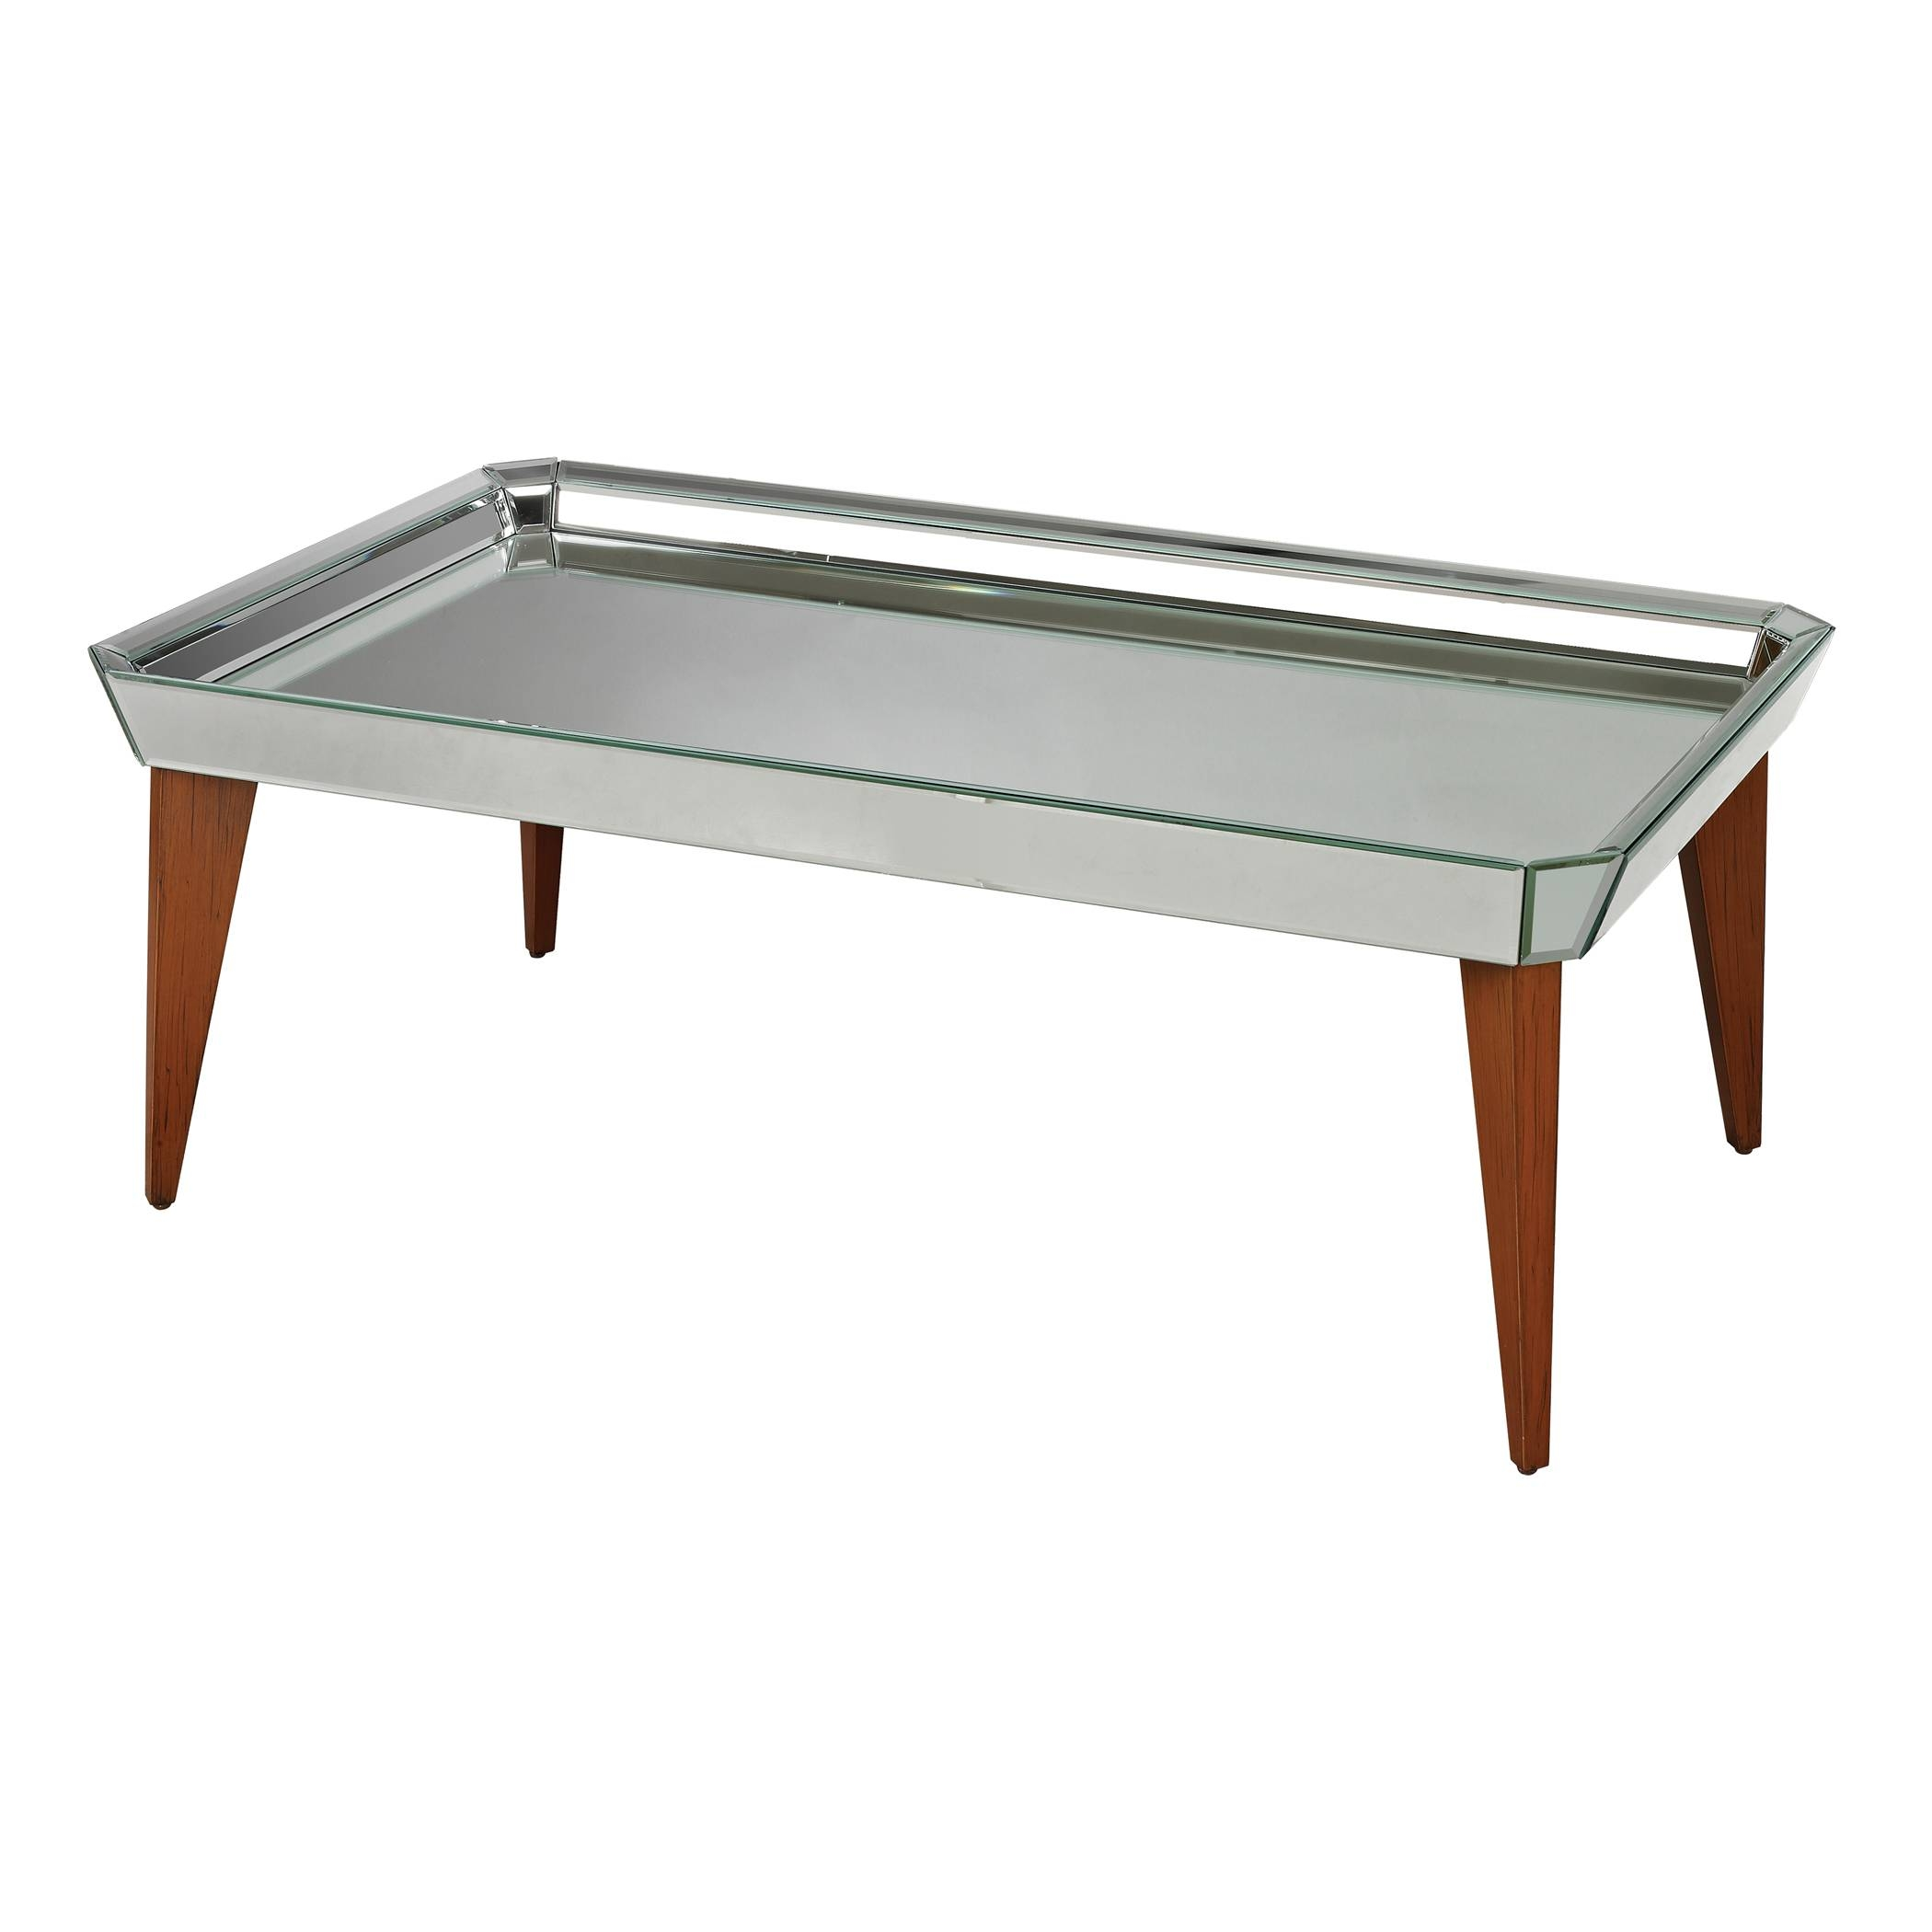 Square Mirrored Glass Top Coffee Table Tray With Wooden Legs Ideas with Round Coffee Table Trays (Image 27 of 30)